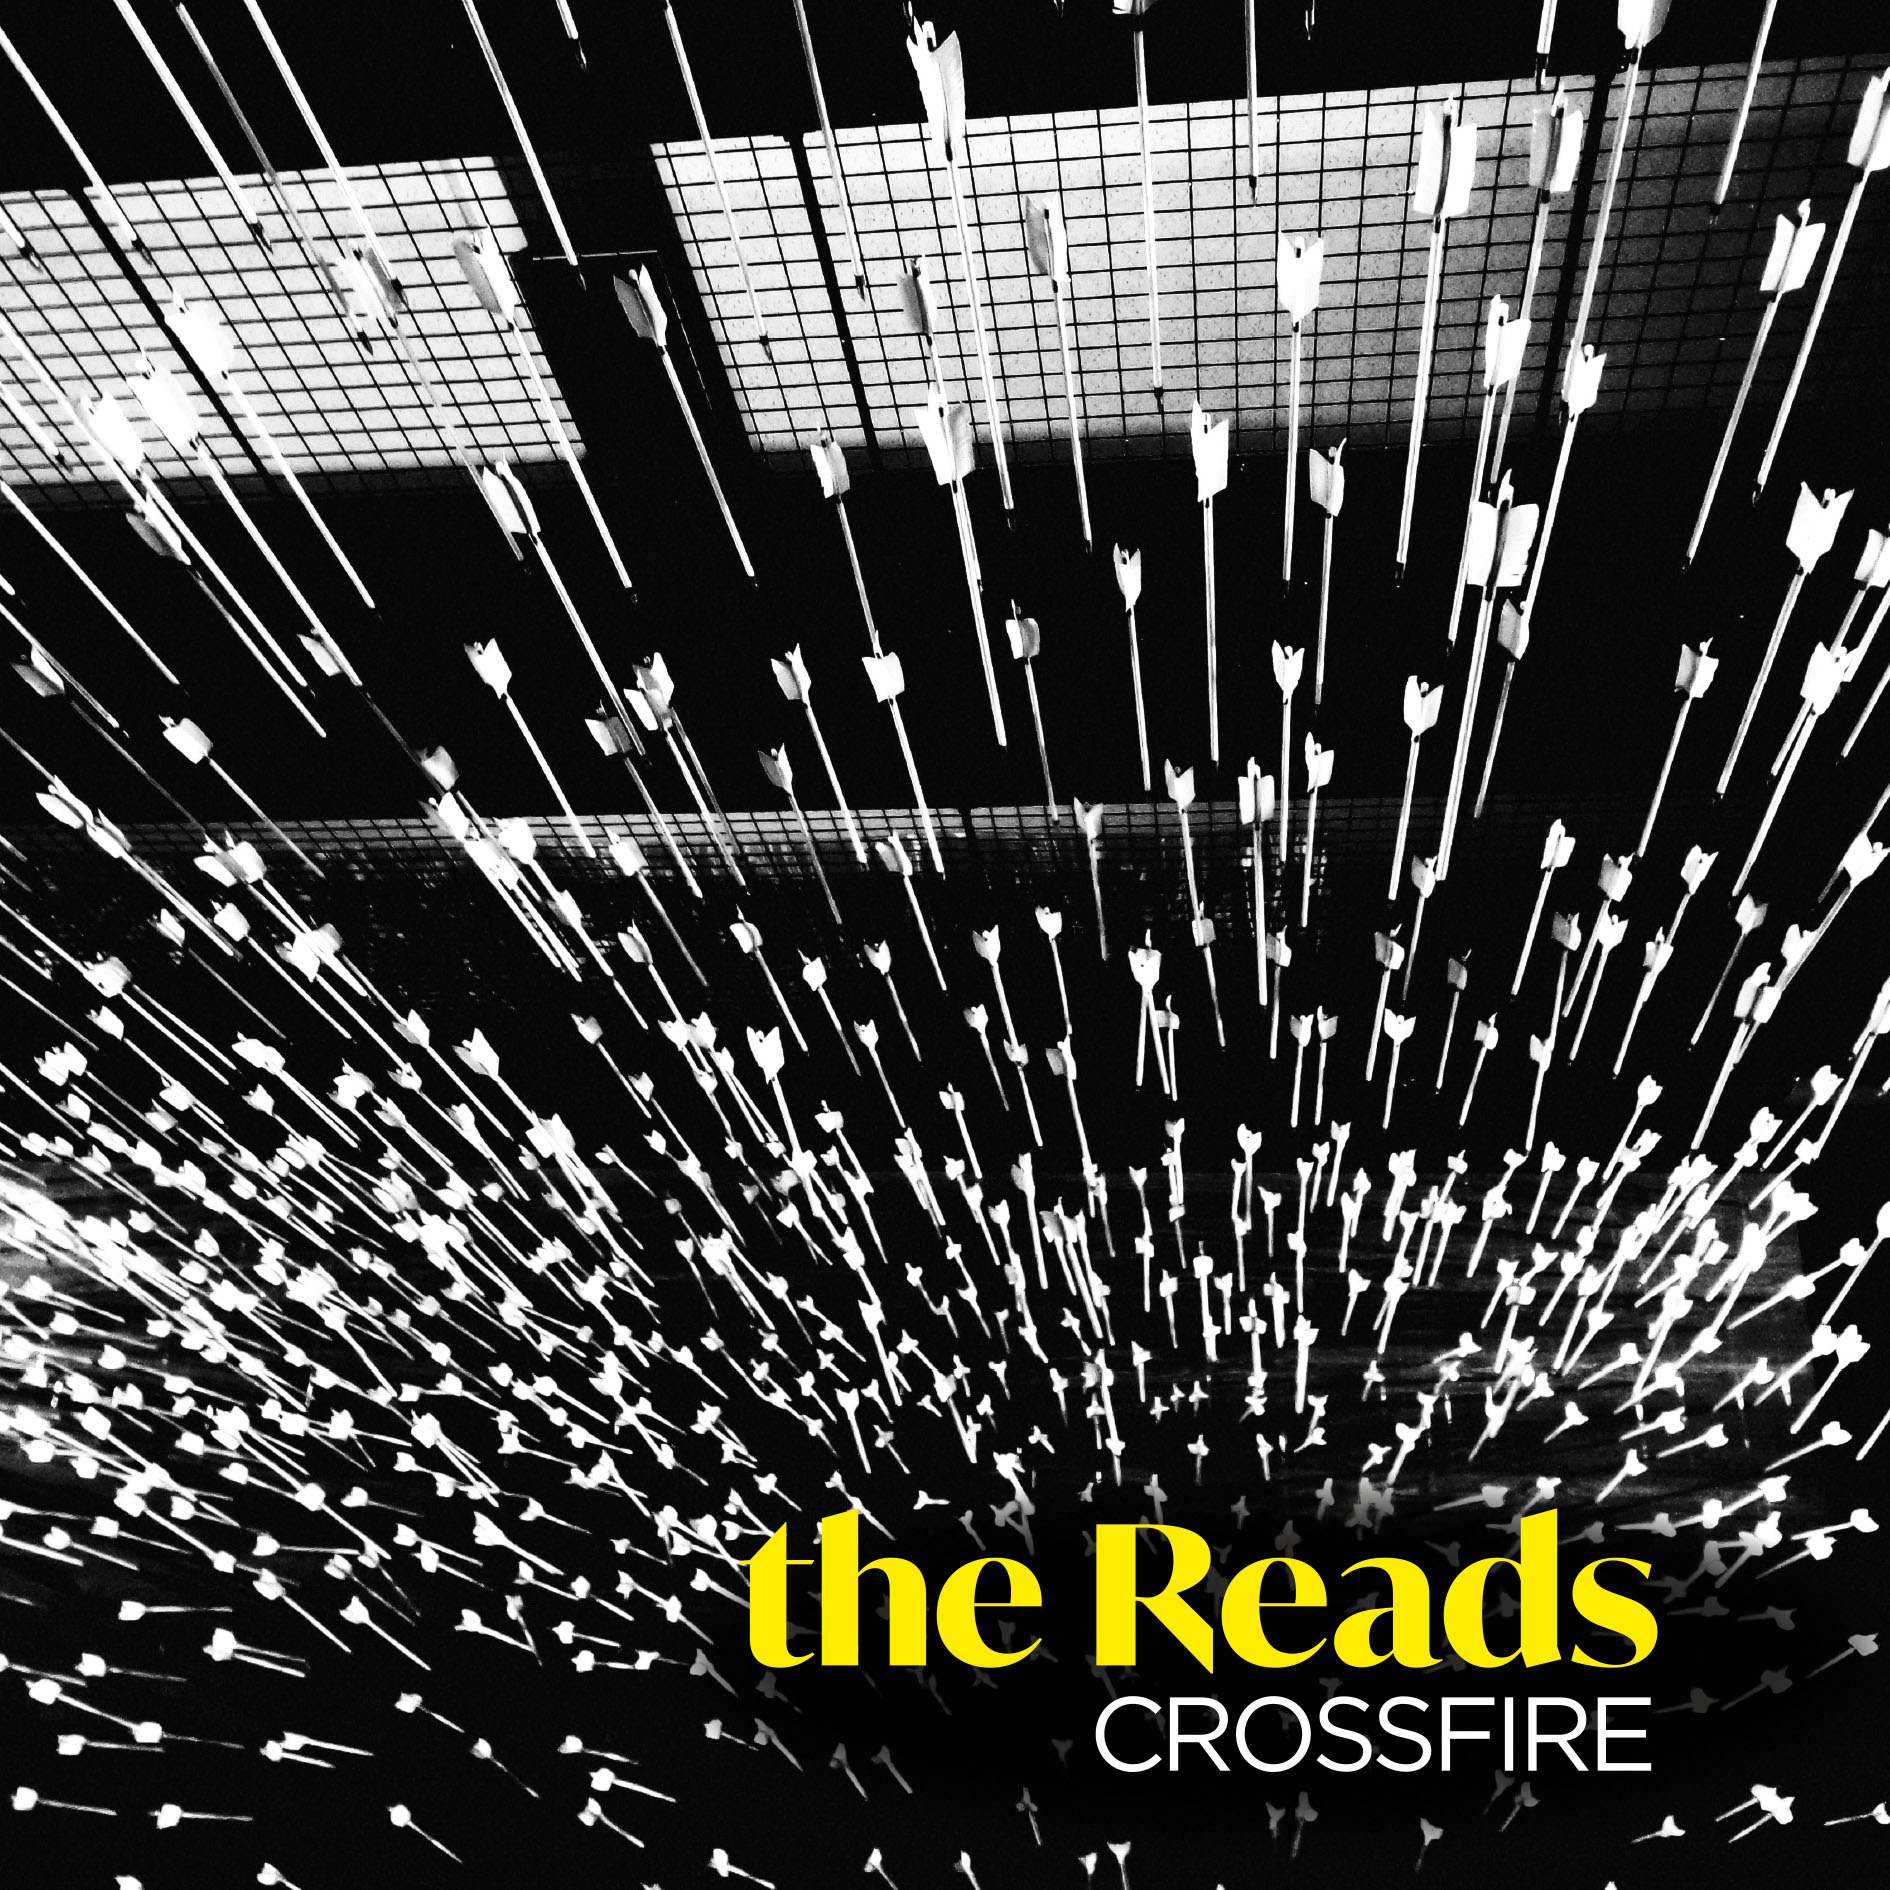 The Reads Crossfire album sleeve